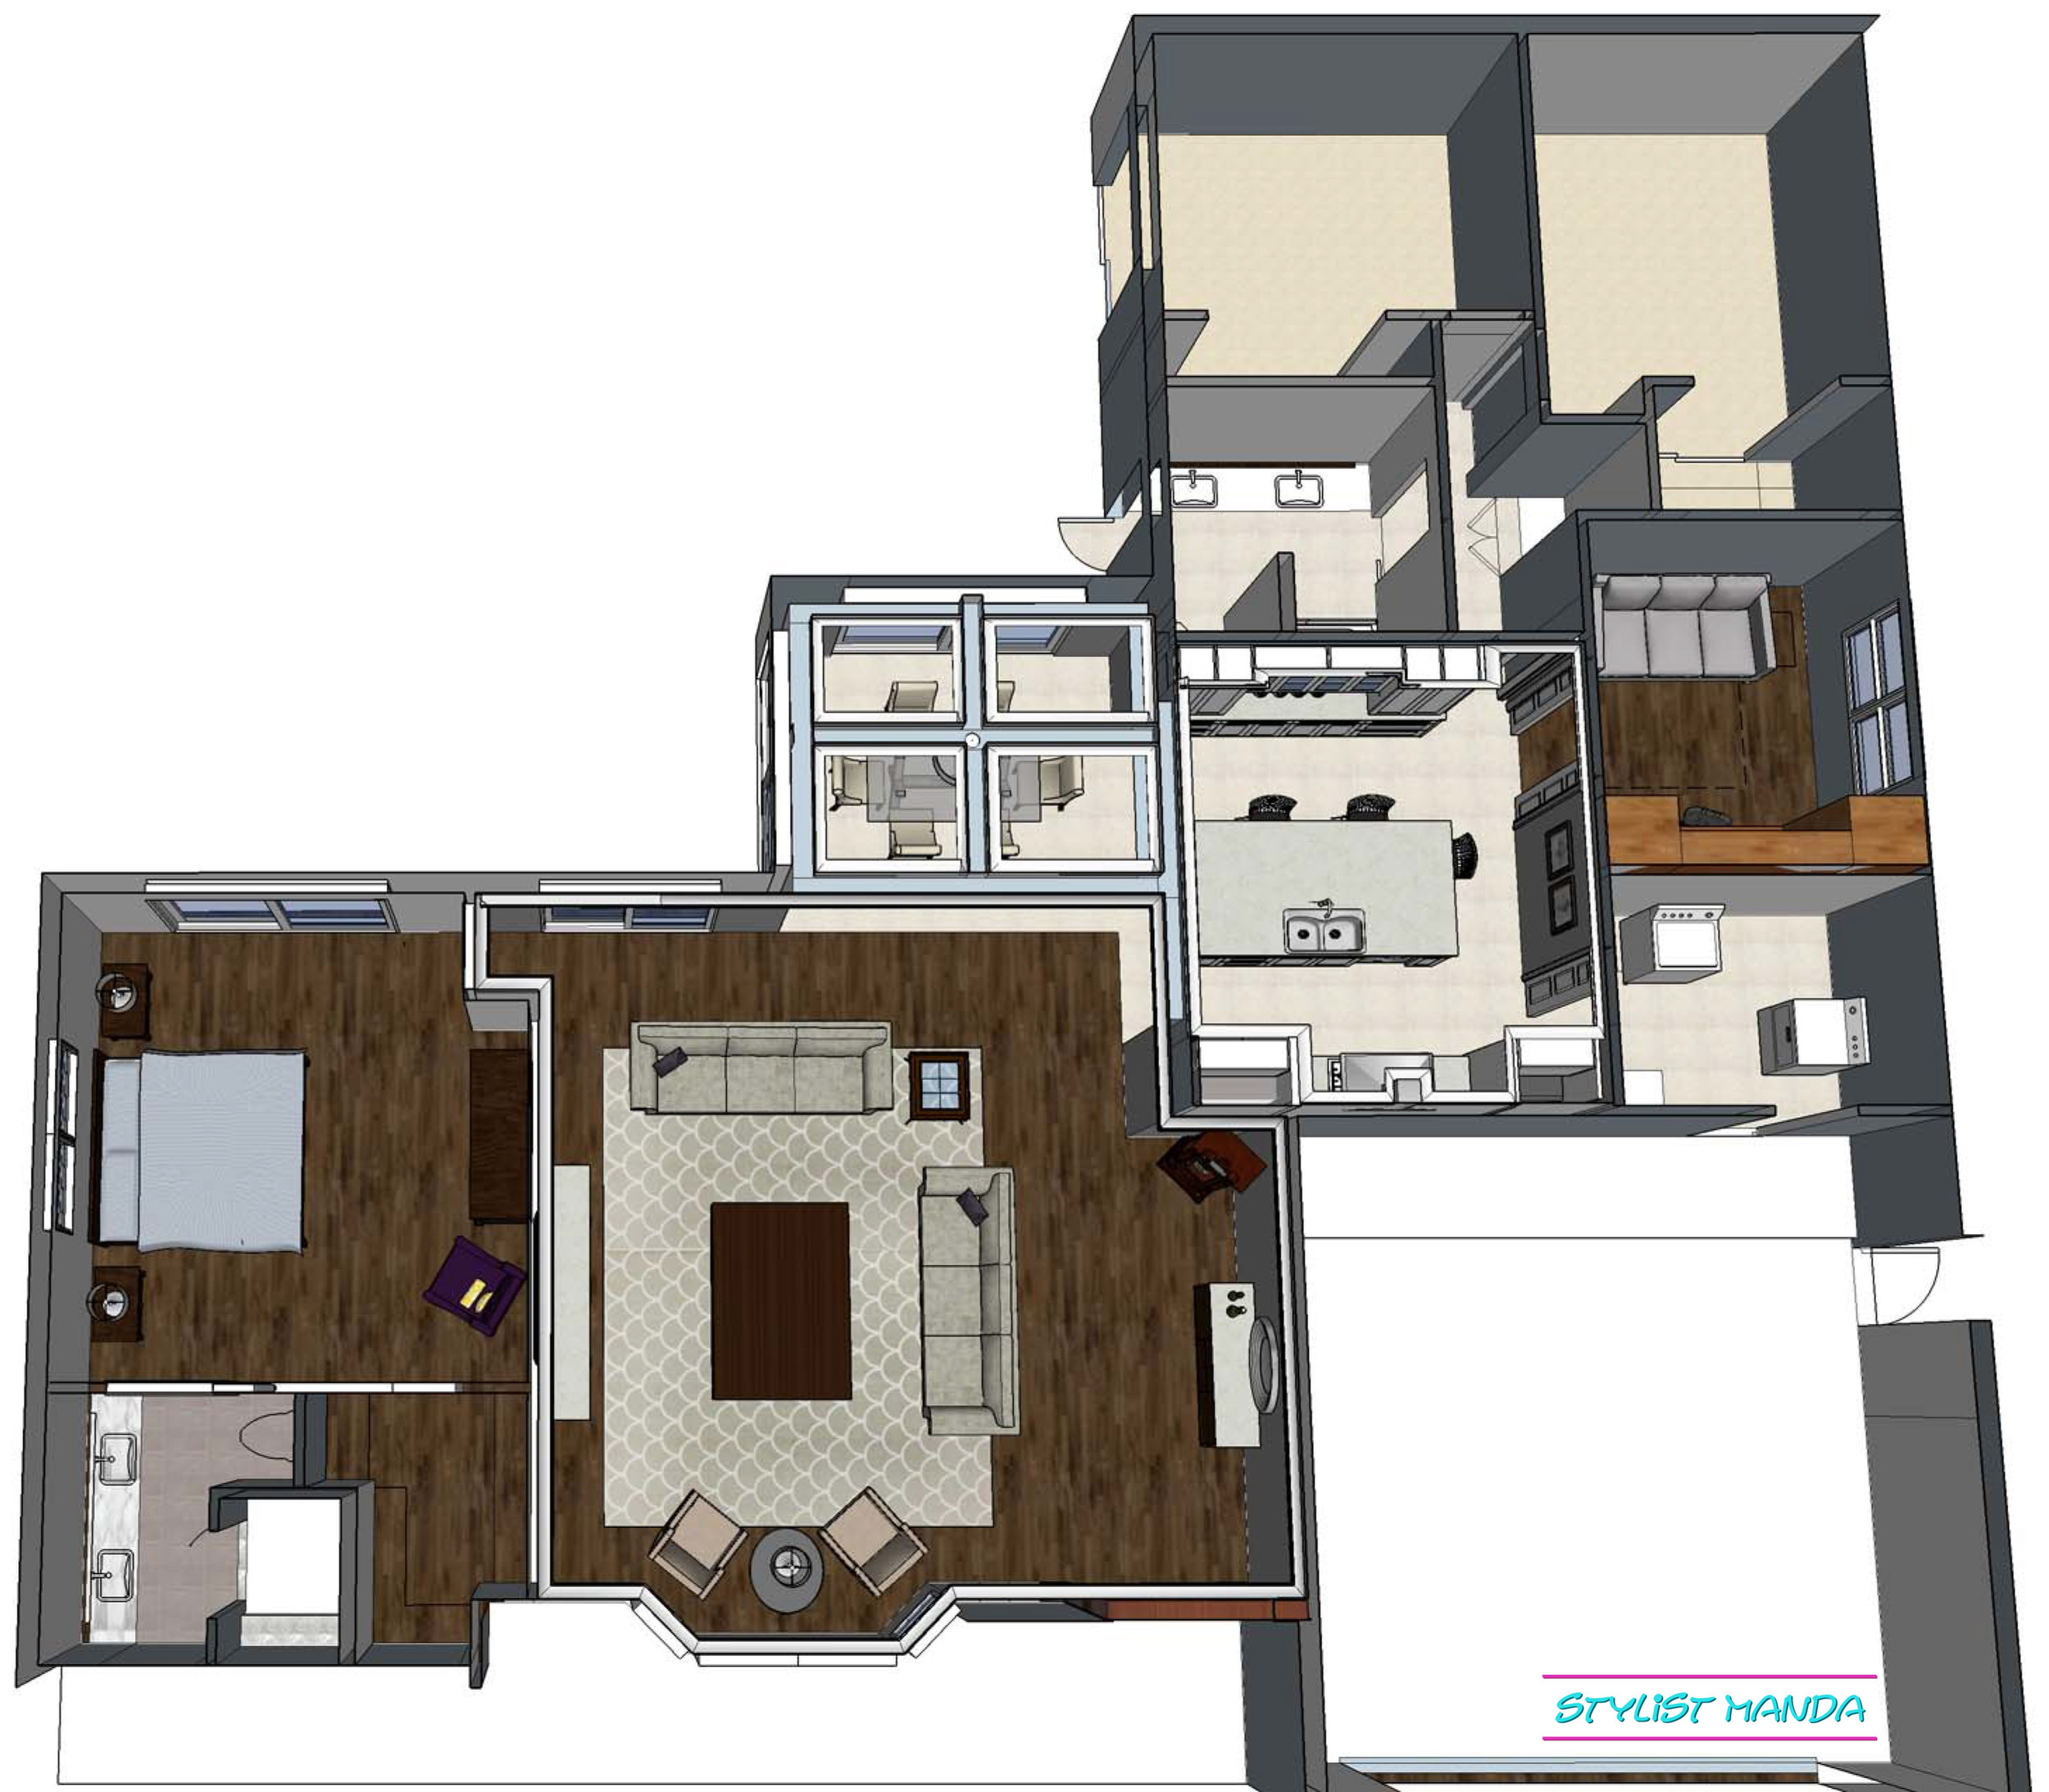 Whole house 3D planning in Sketchup is the perfect way to visualize your next home renovation